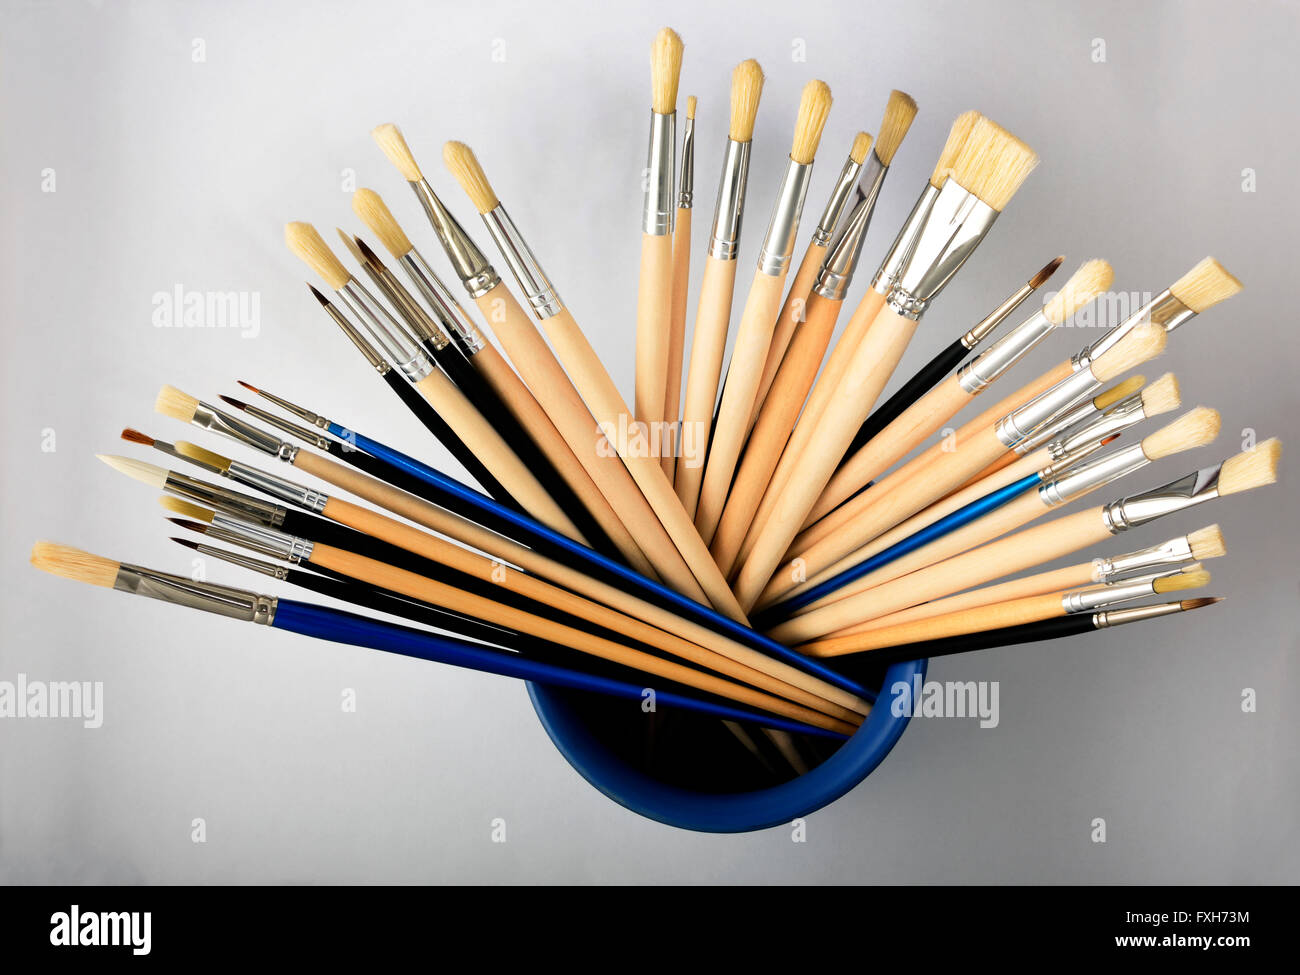 artists paint brushes - Stock Image